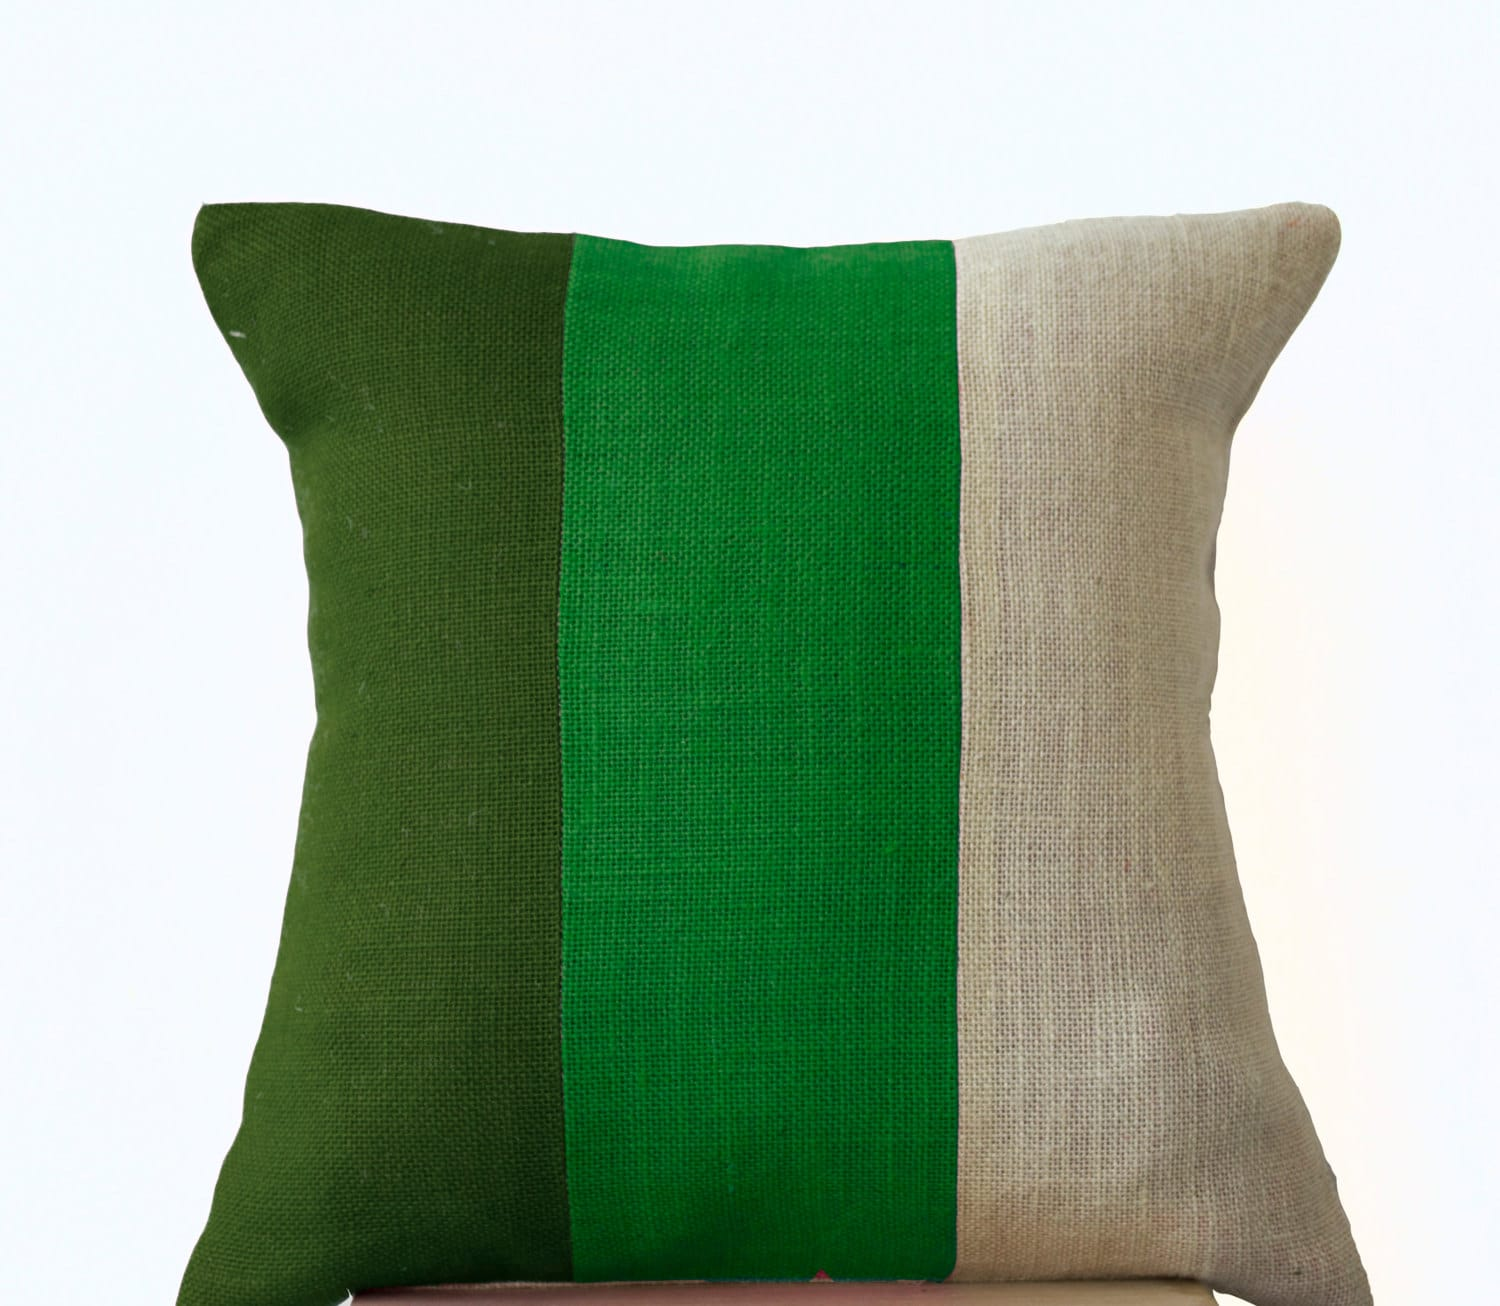 Burlap Throw Pillows Etsy : Chic Green Burlap Pillow Throw Pillows color block by AmoreBeaute